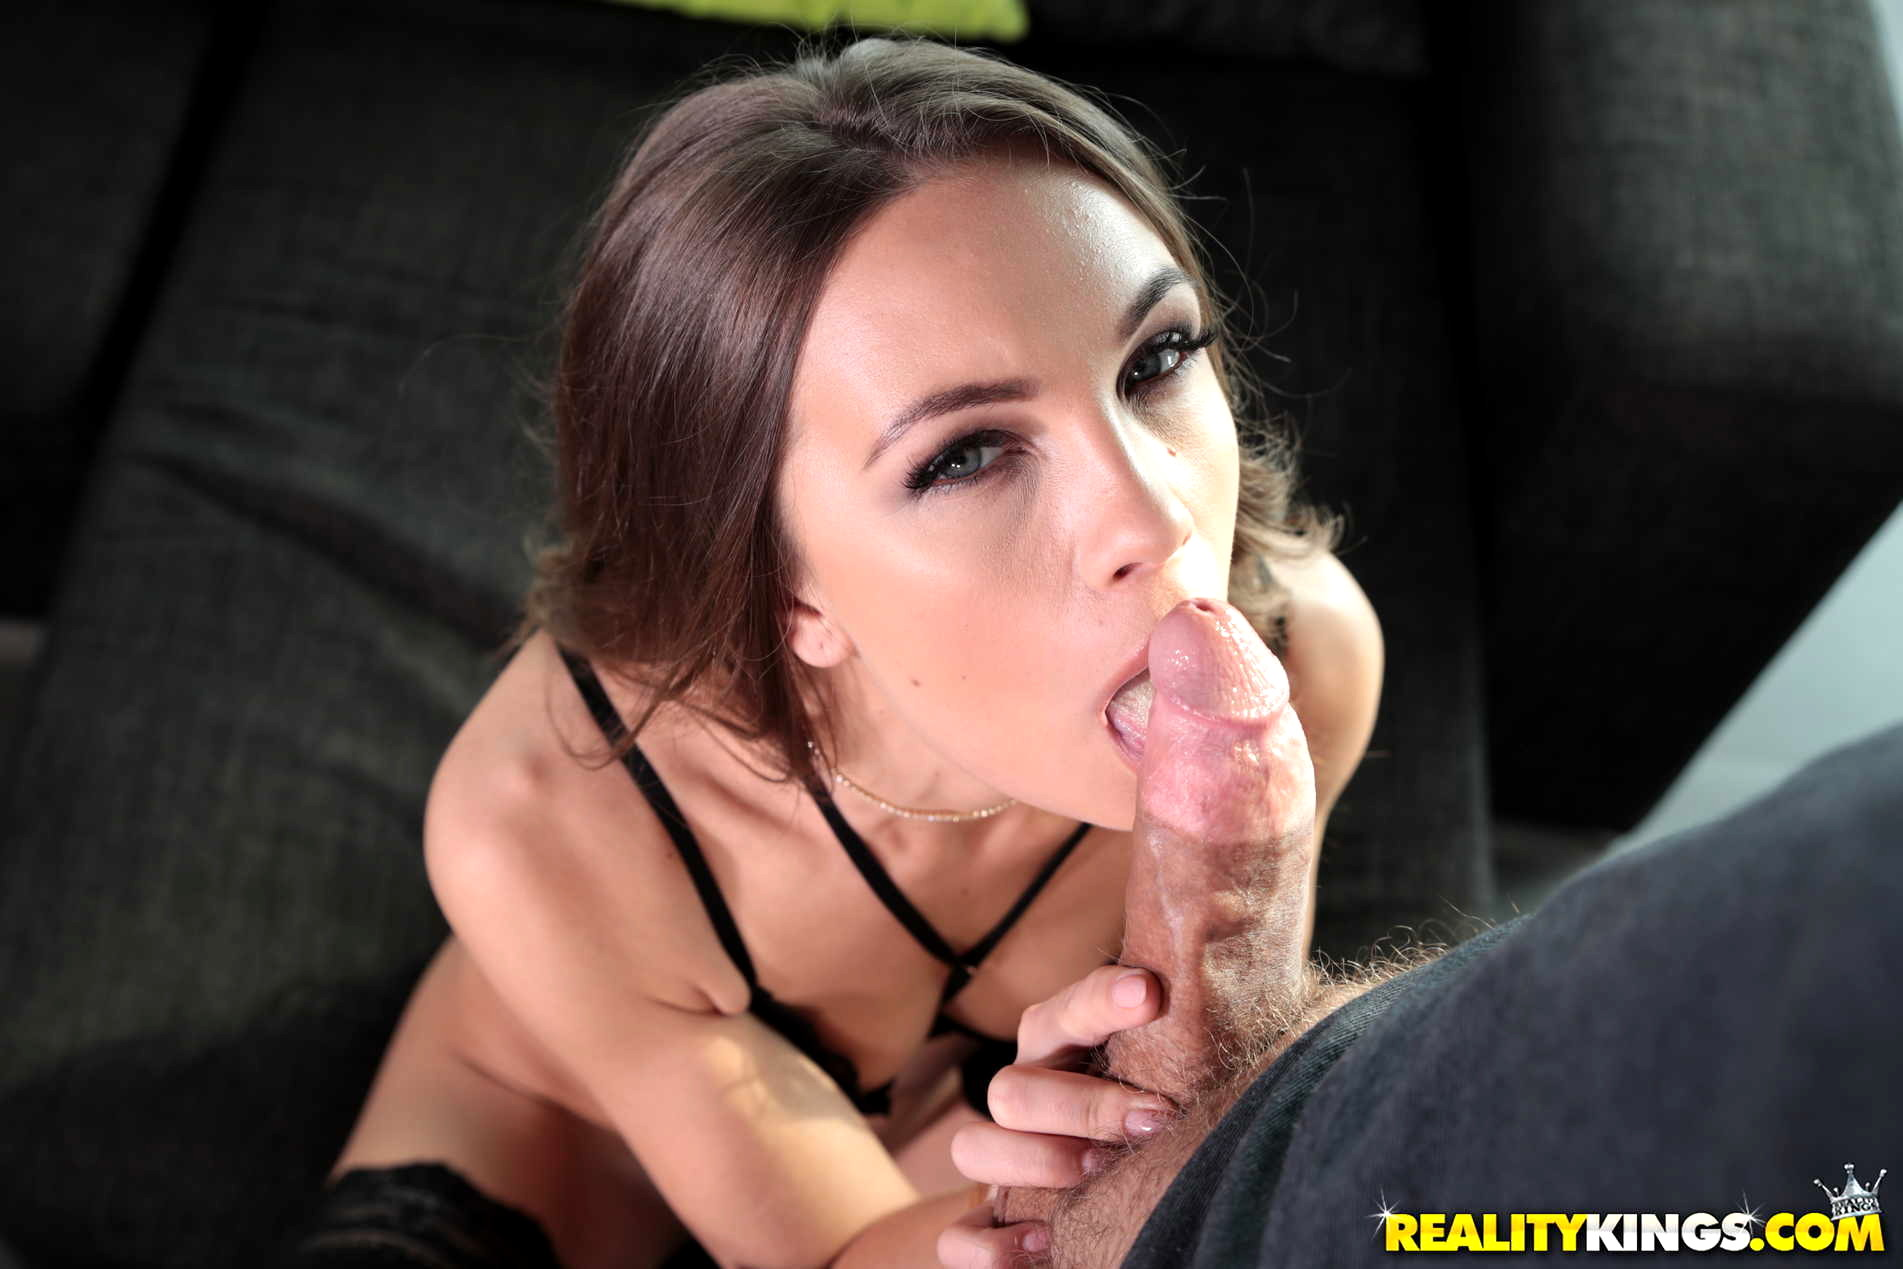 Babe Today First Time Auditions Veronica Clark Emag Anal -2910